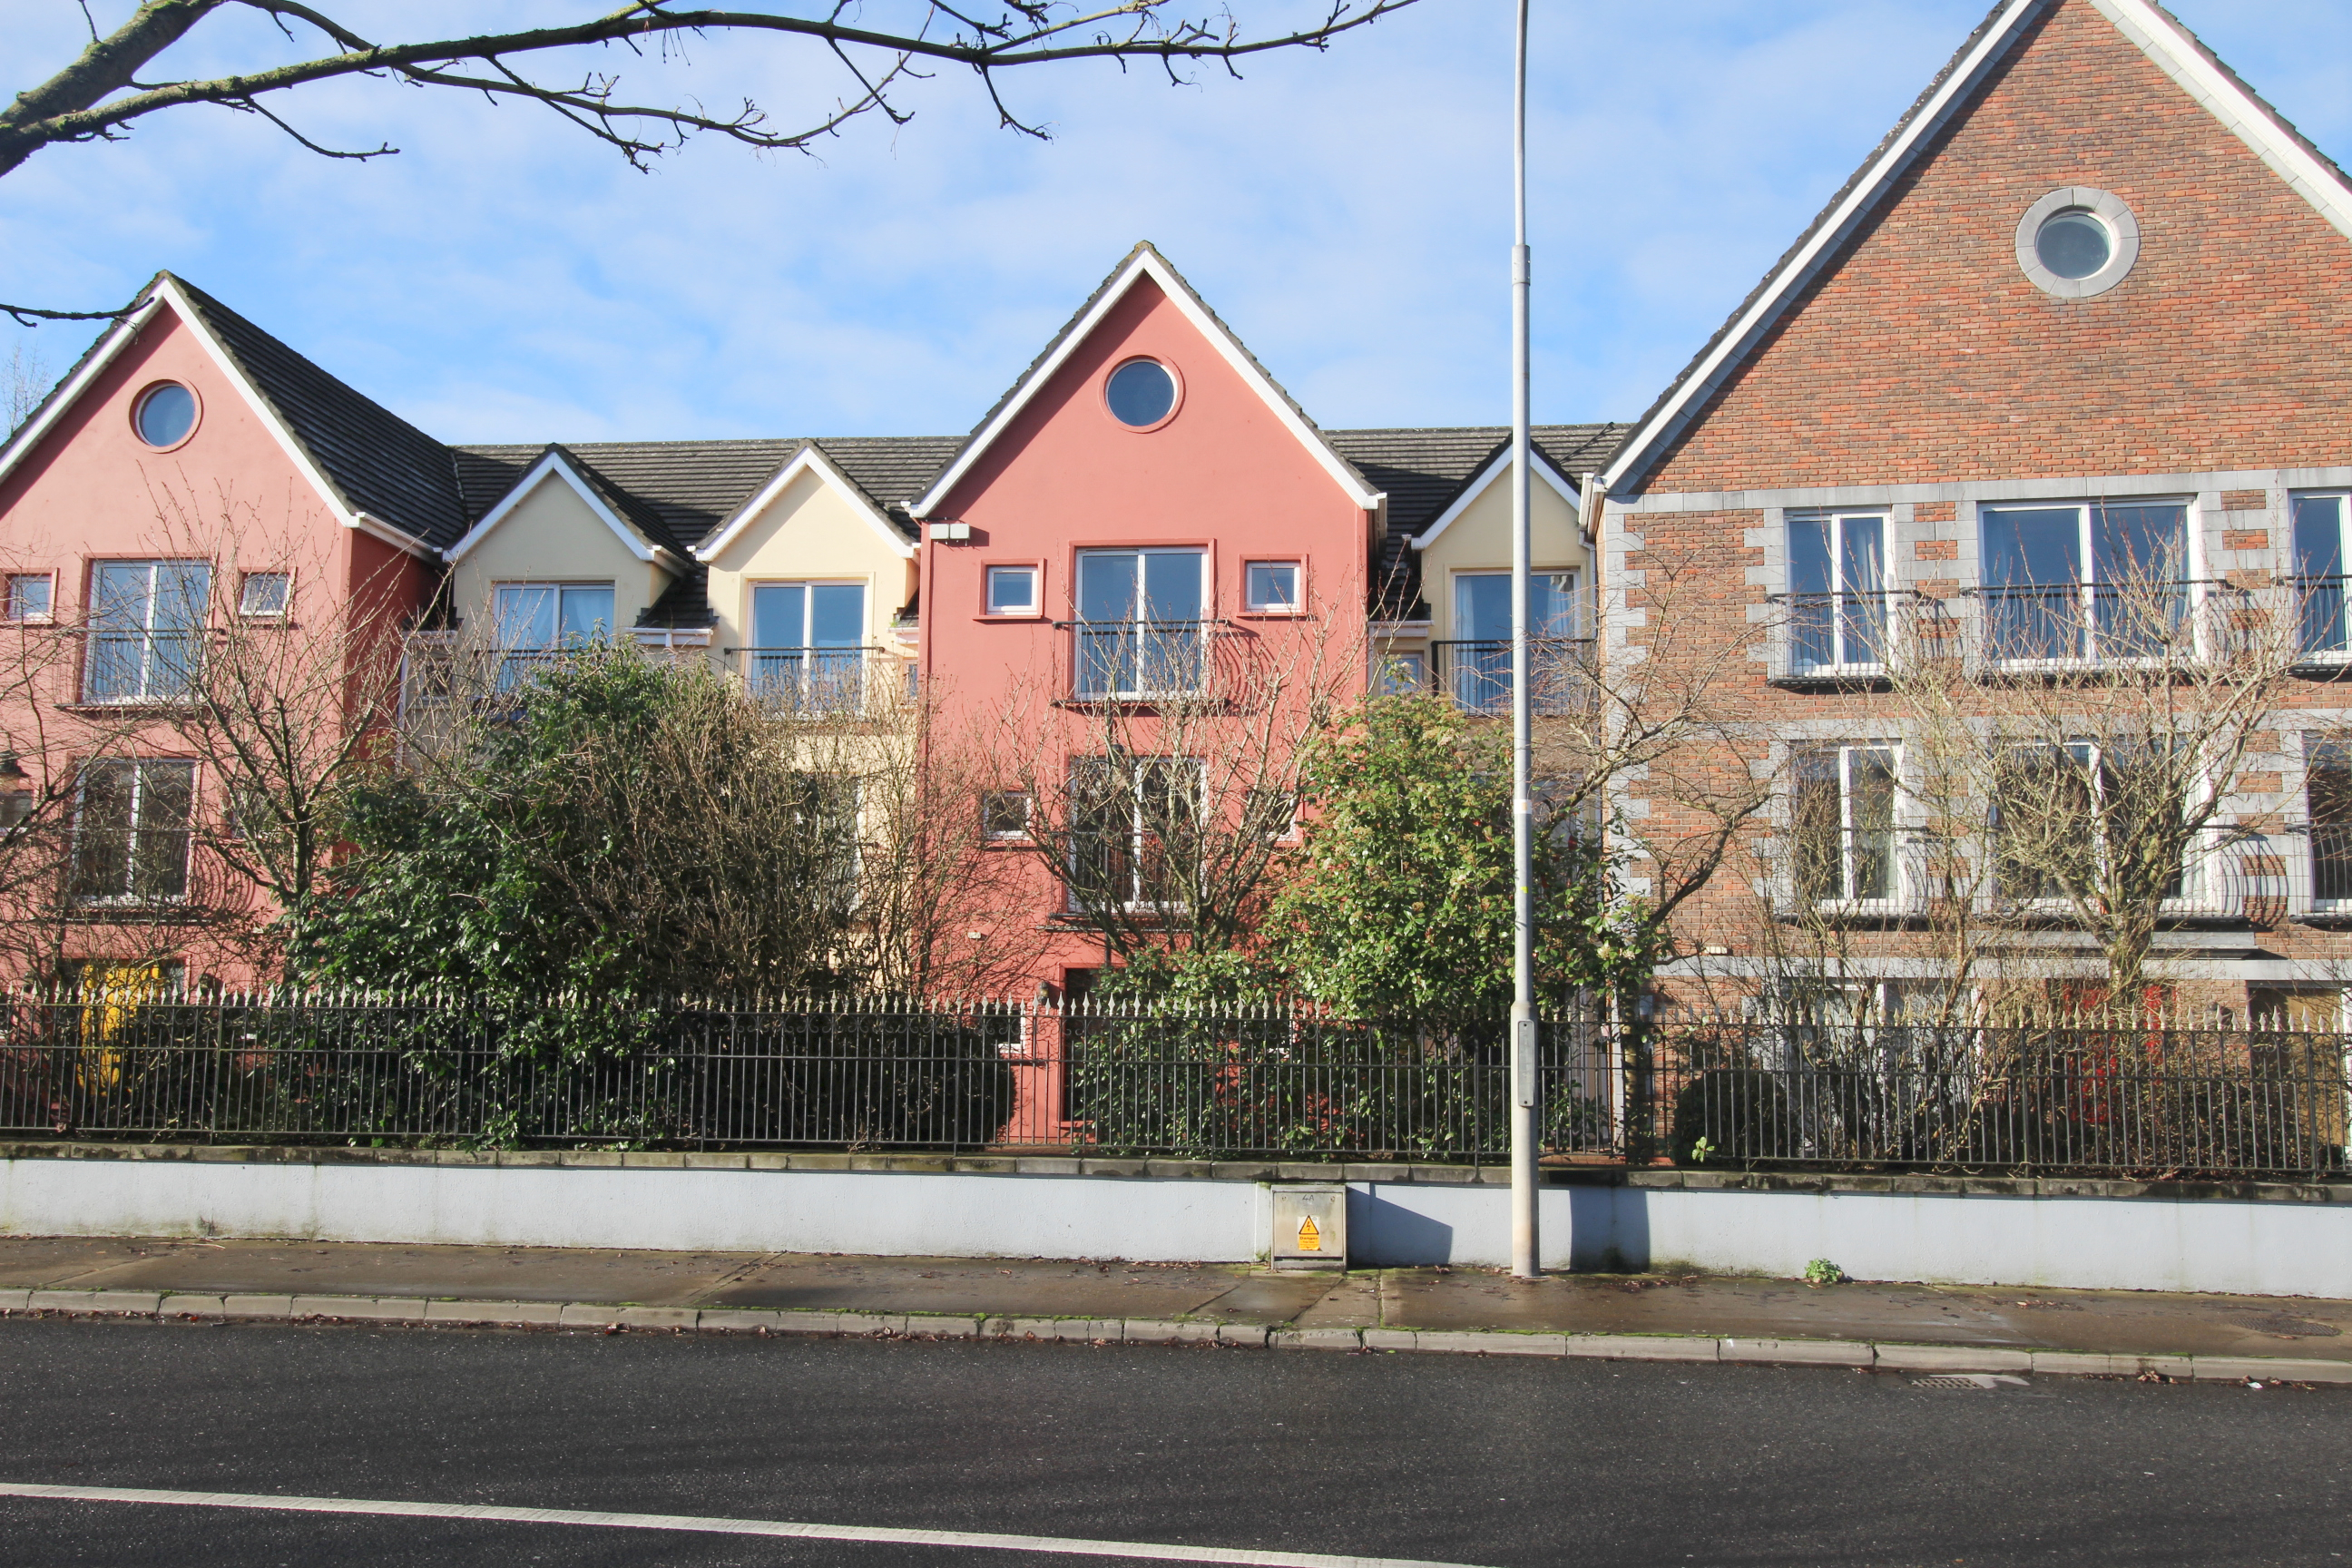 17 Clonmacken Court, Ennis Road, Limerick